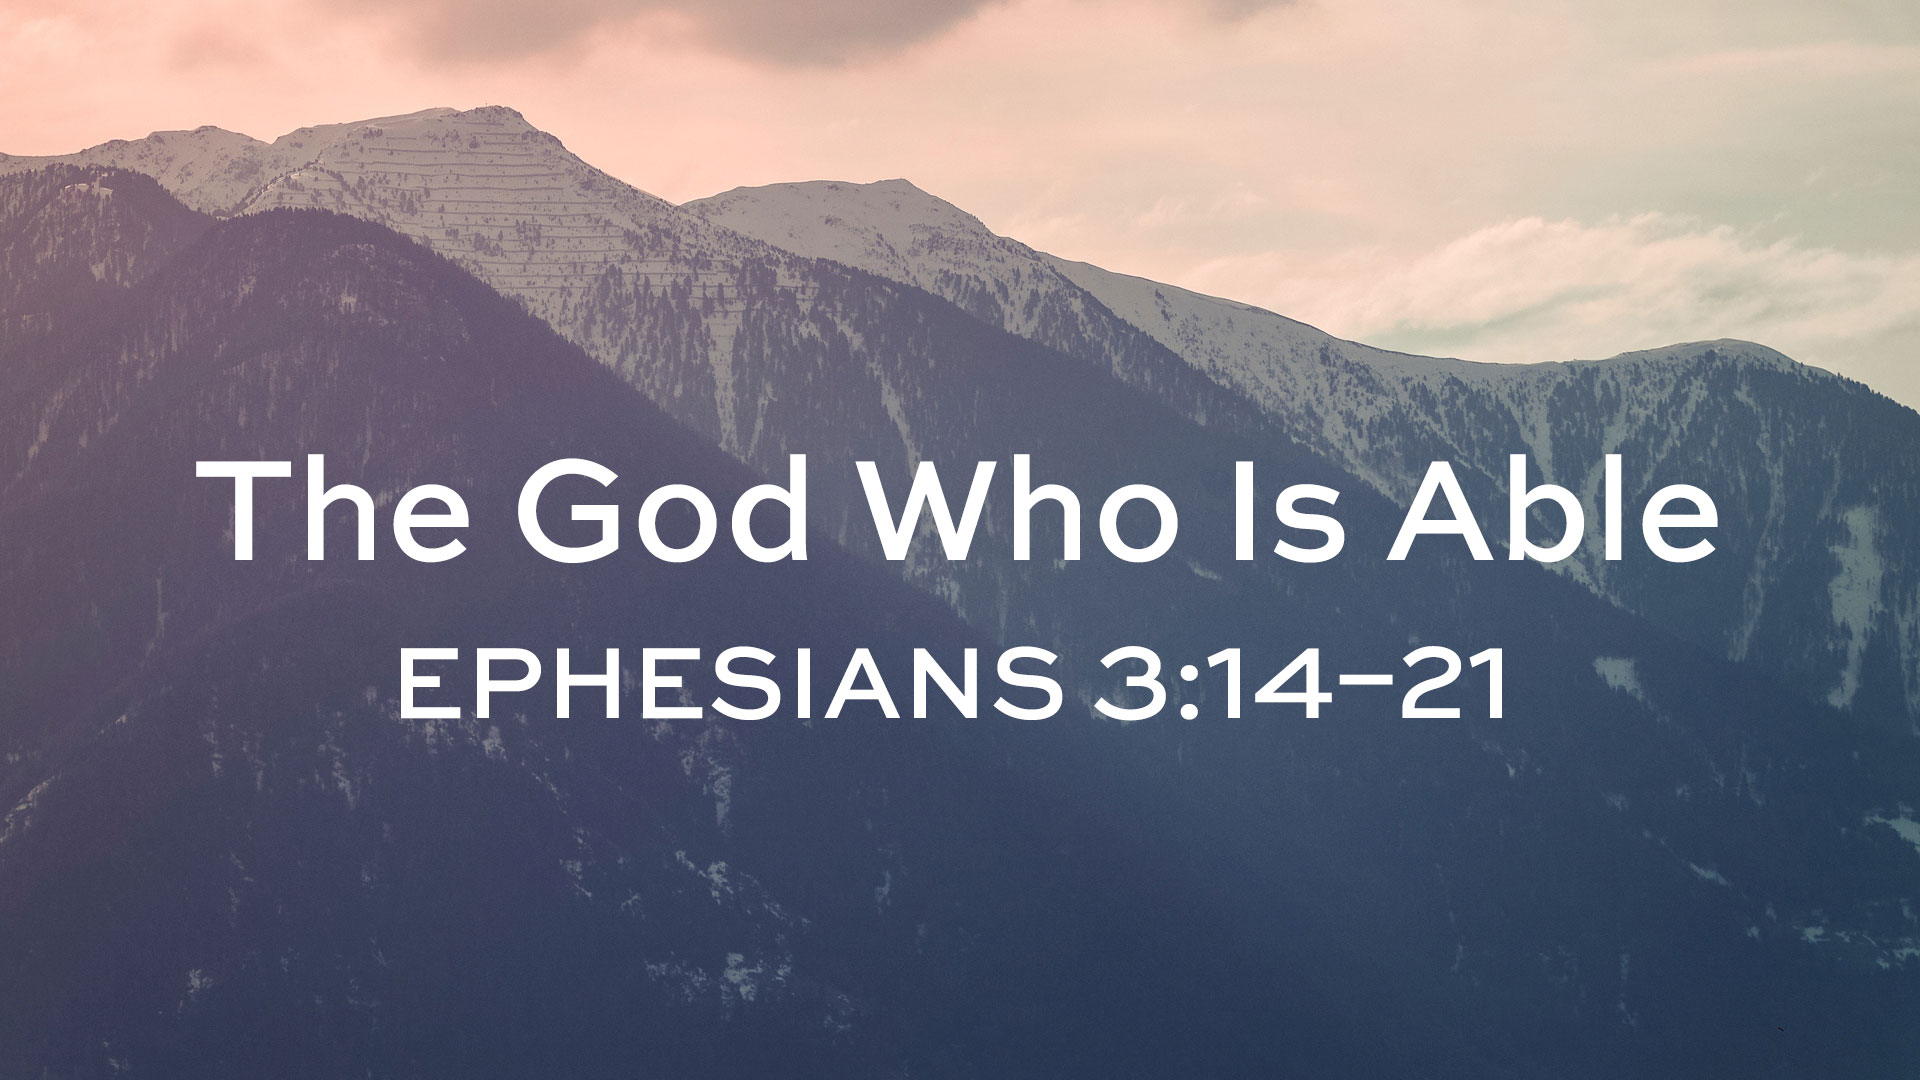 Eph 3.14-21-God Who is Able.jpg